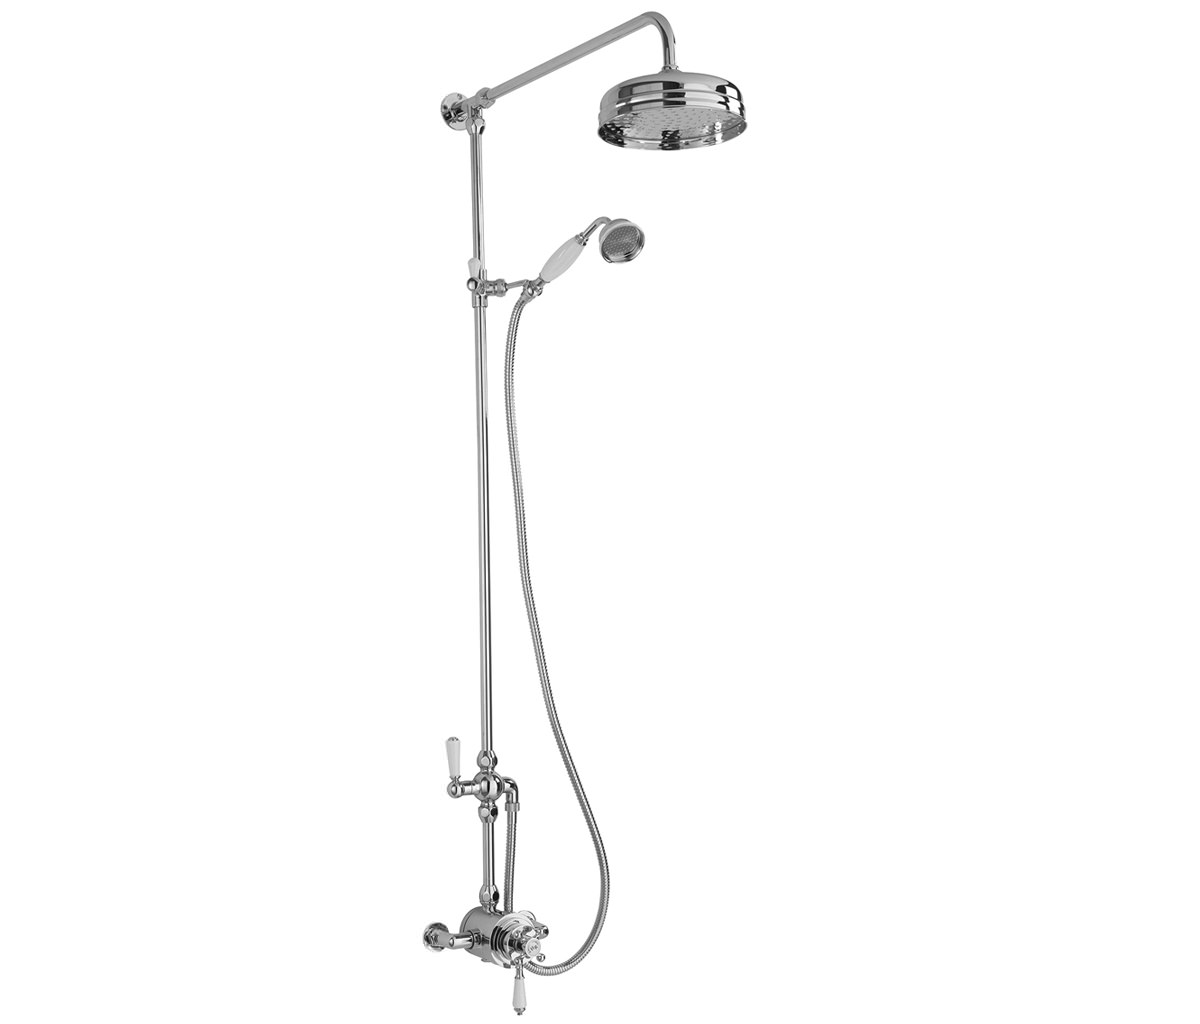 Beo Traditional Exposed Shower Valve With Riser Kit And Diverter-BEO ...